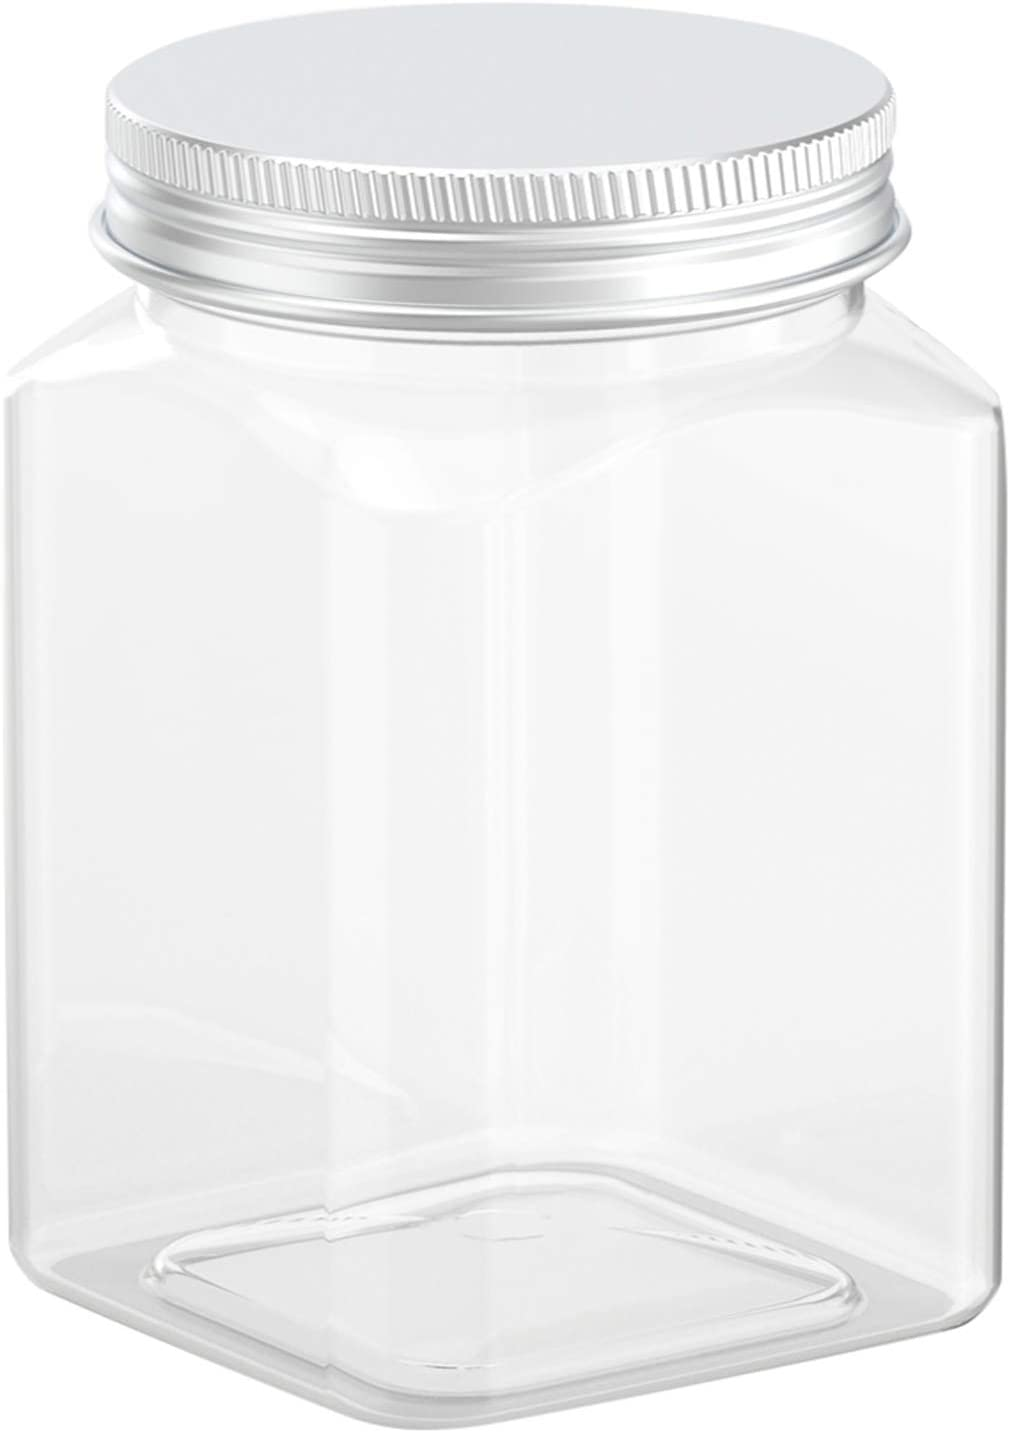 Axe Sickle 24 Ounce Clear Plastic Jars Storage Containers With Lids For Kitchen & Household Storage Airtight Container 6 PCS